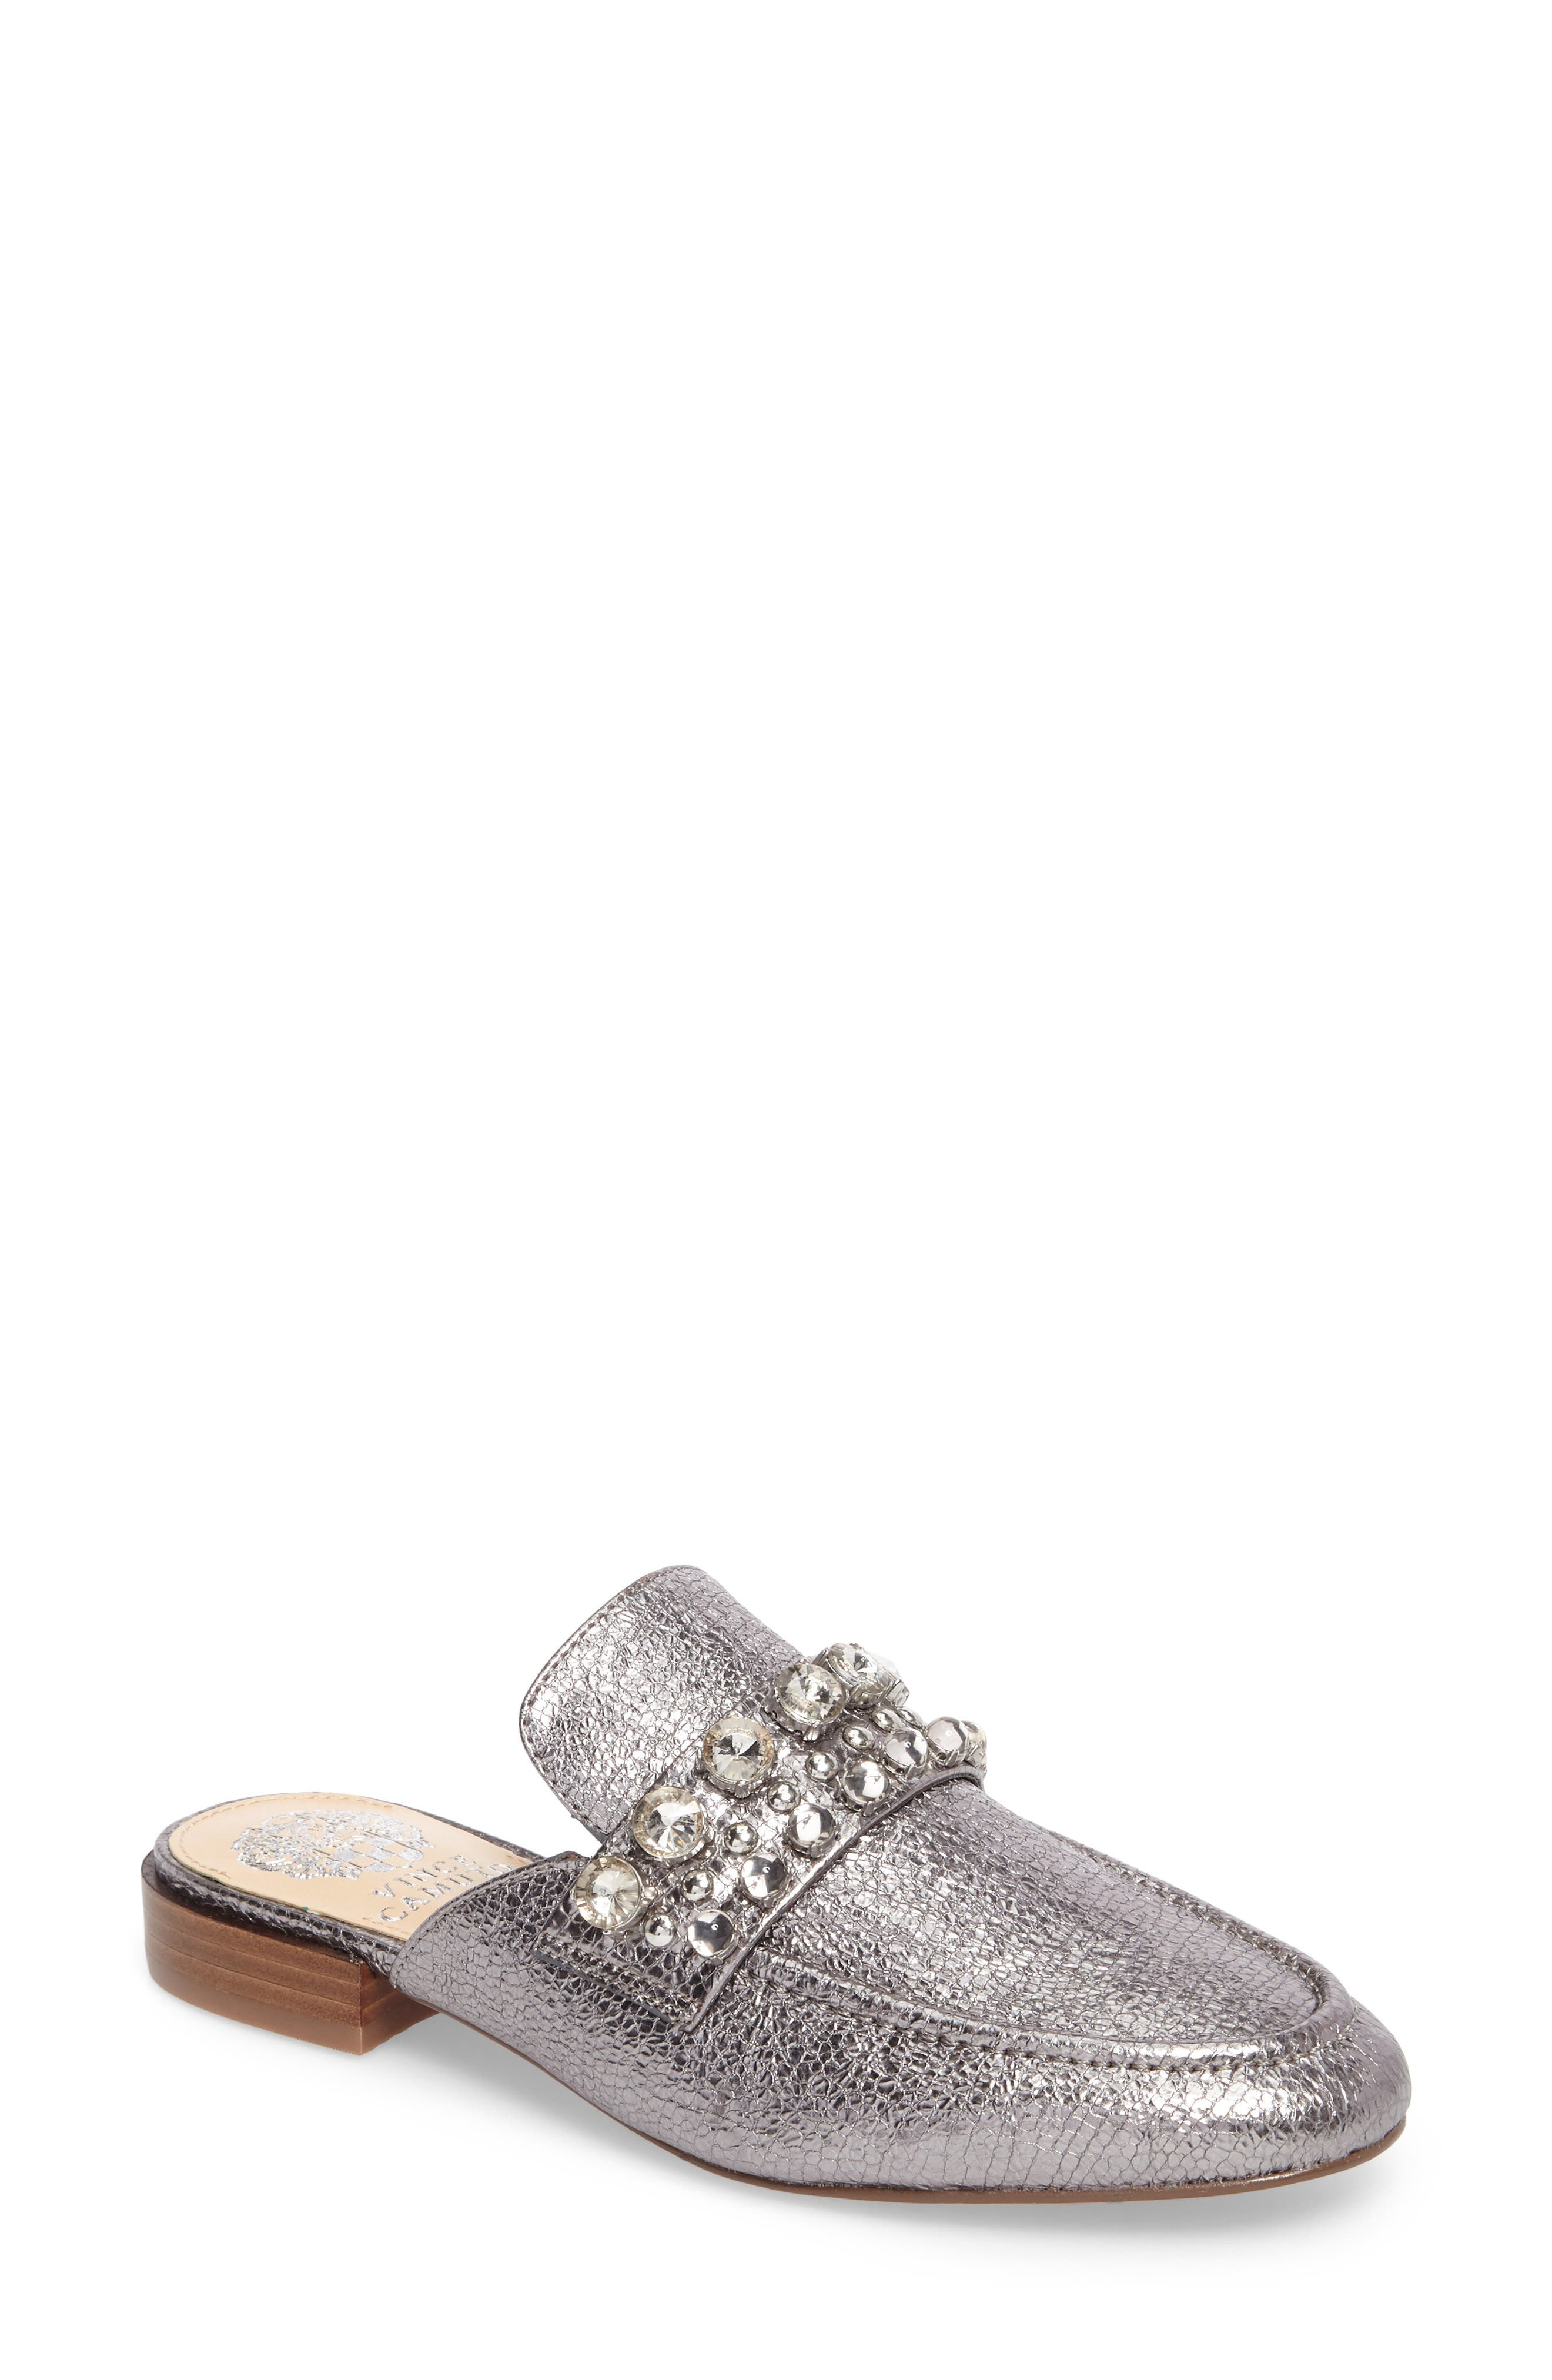 Vince Camuto Torlissi Loafer Mule (Women)